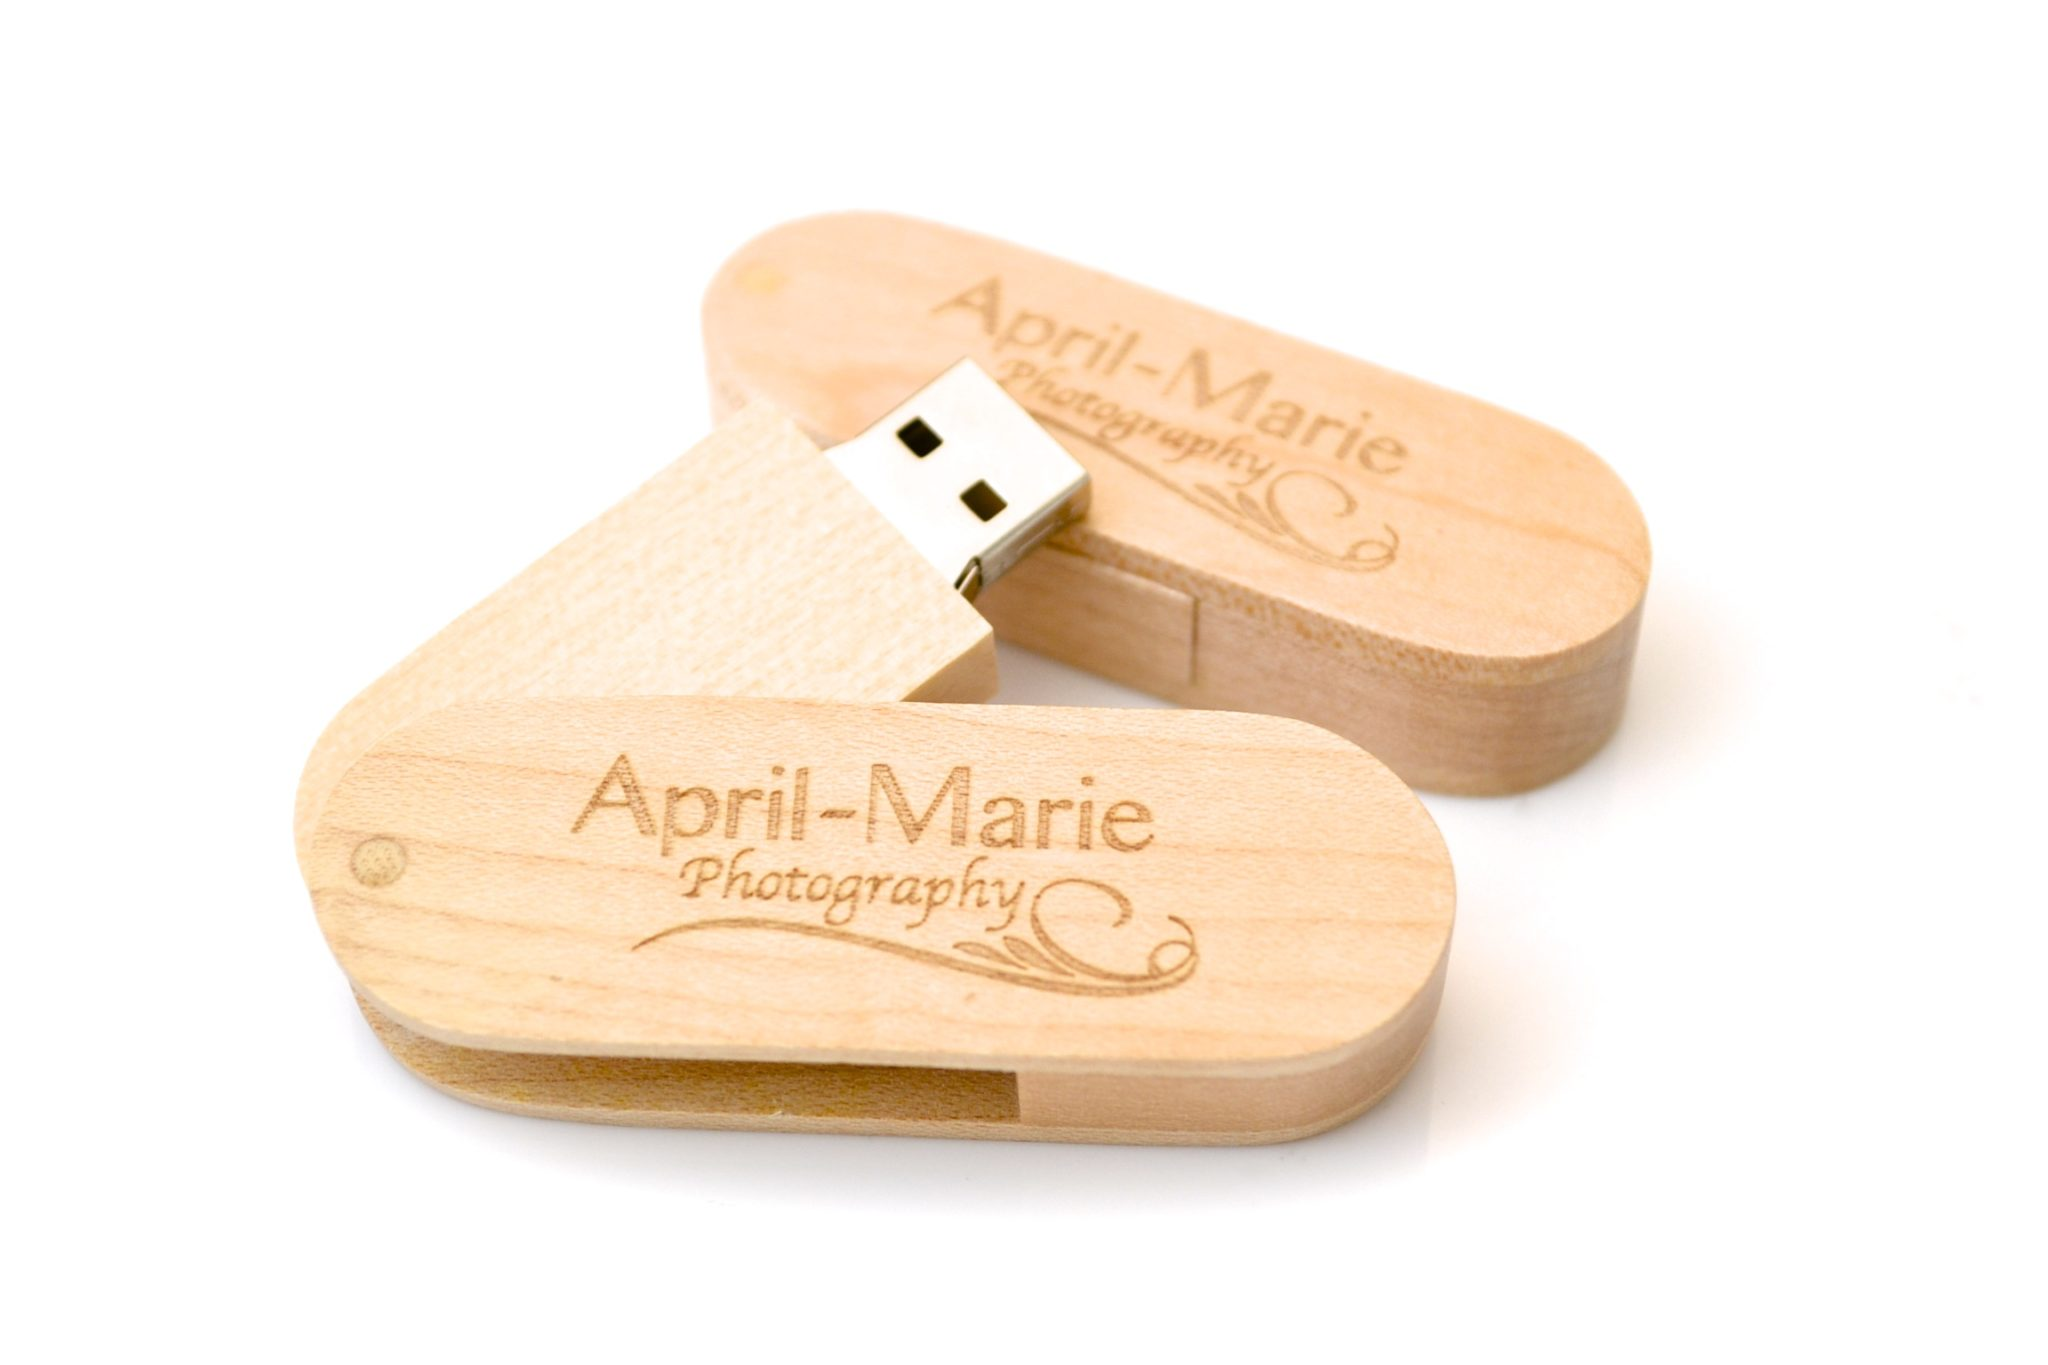 Wood Swivel USB - WU6 - Wooden Twister Memory Stick